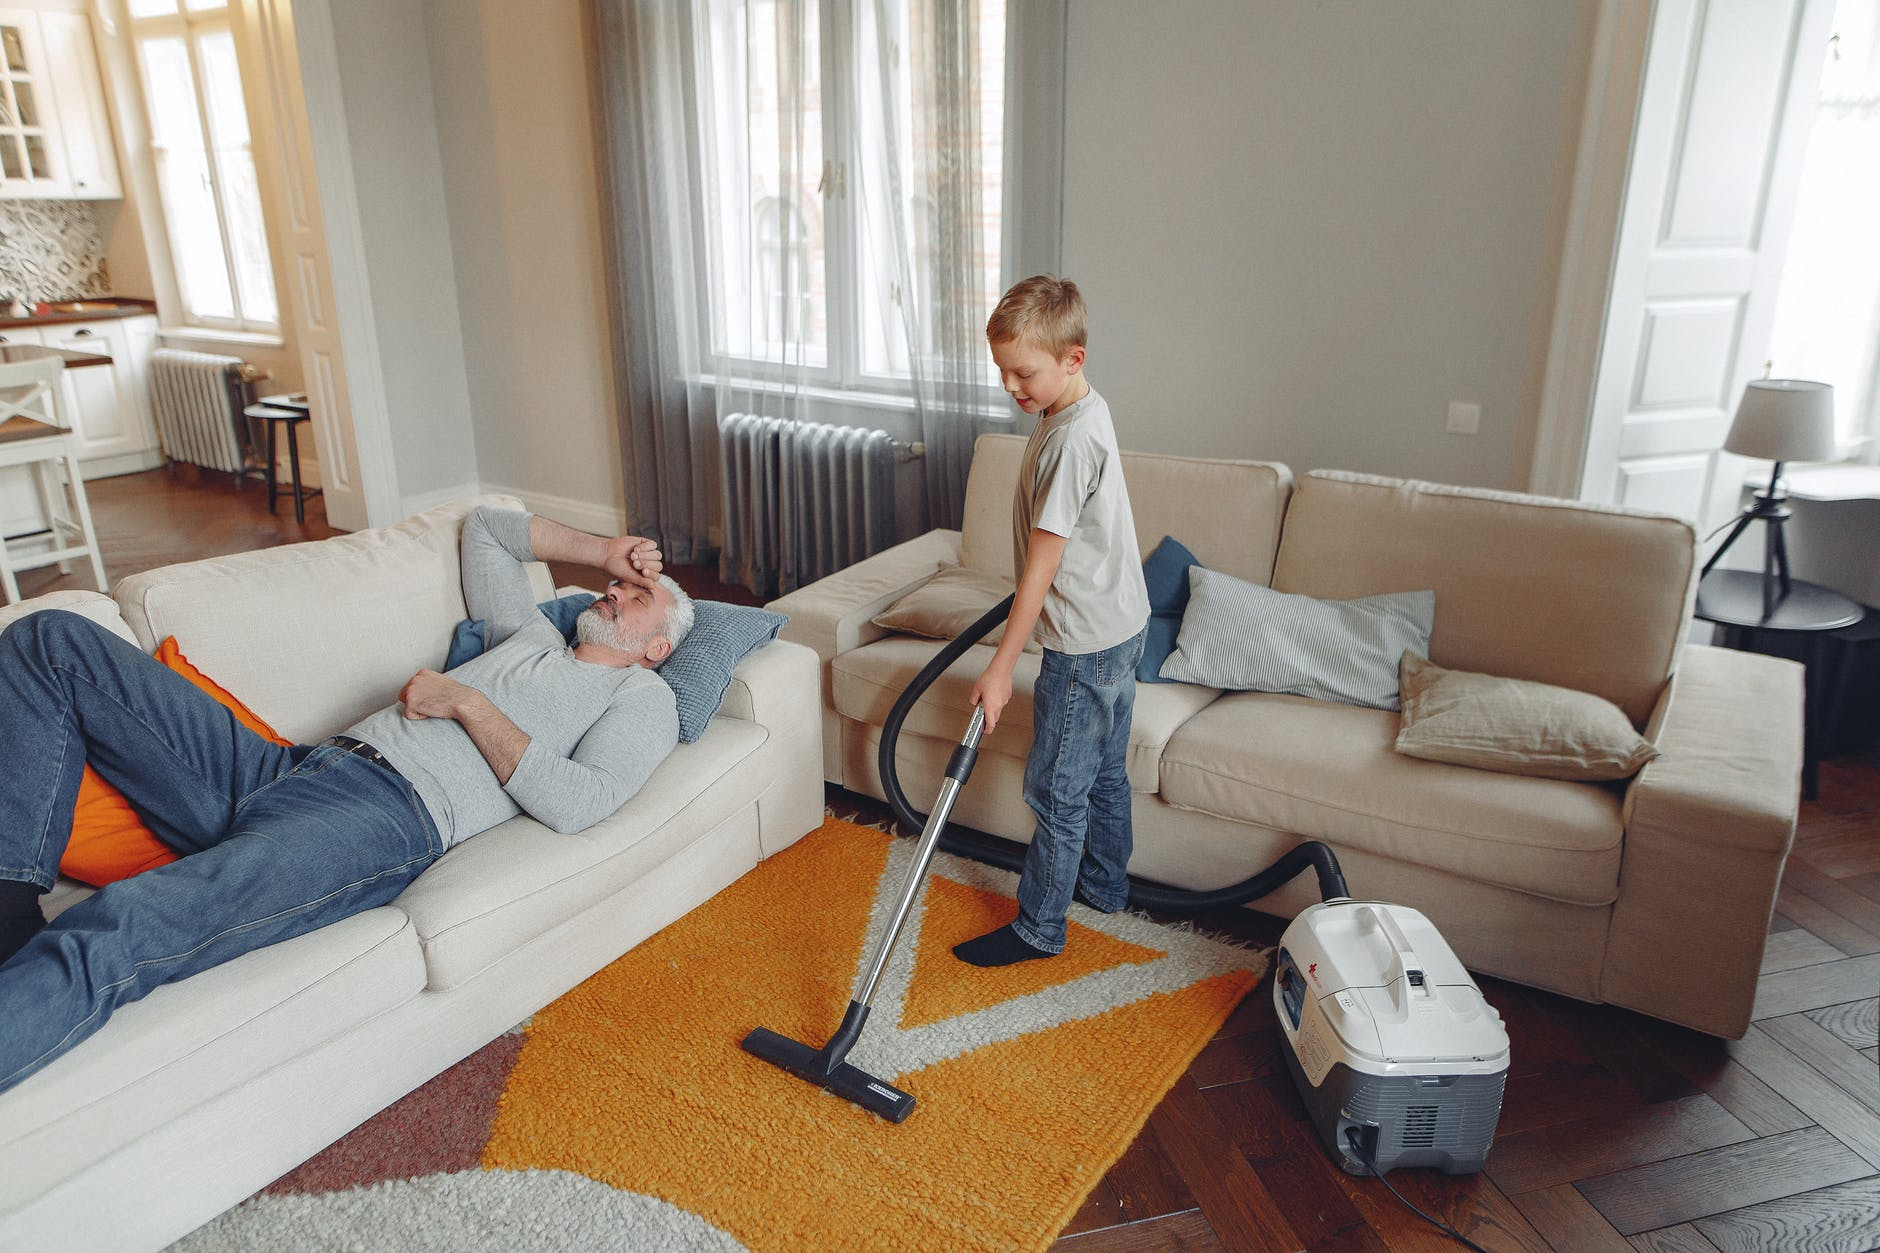 5 Best Onson Vacuums On The Market